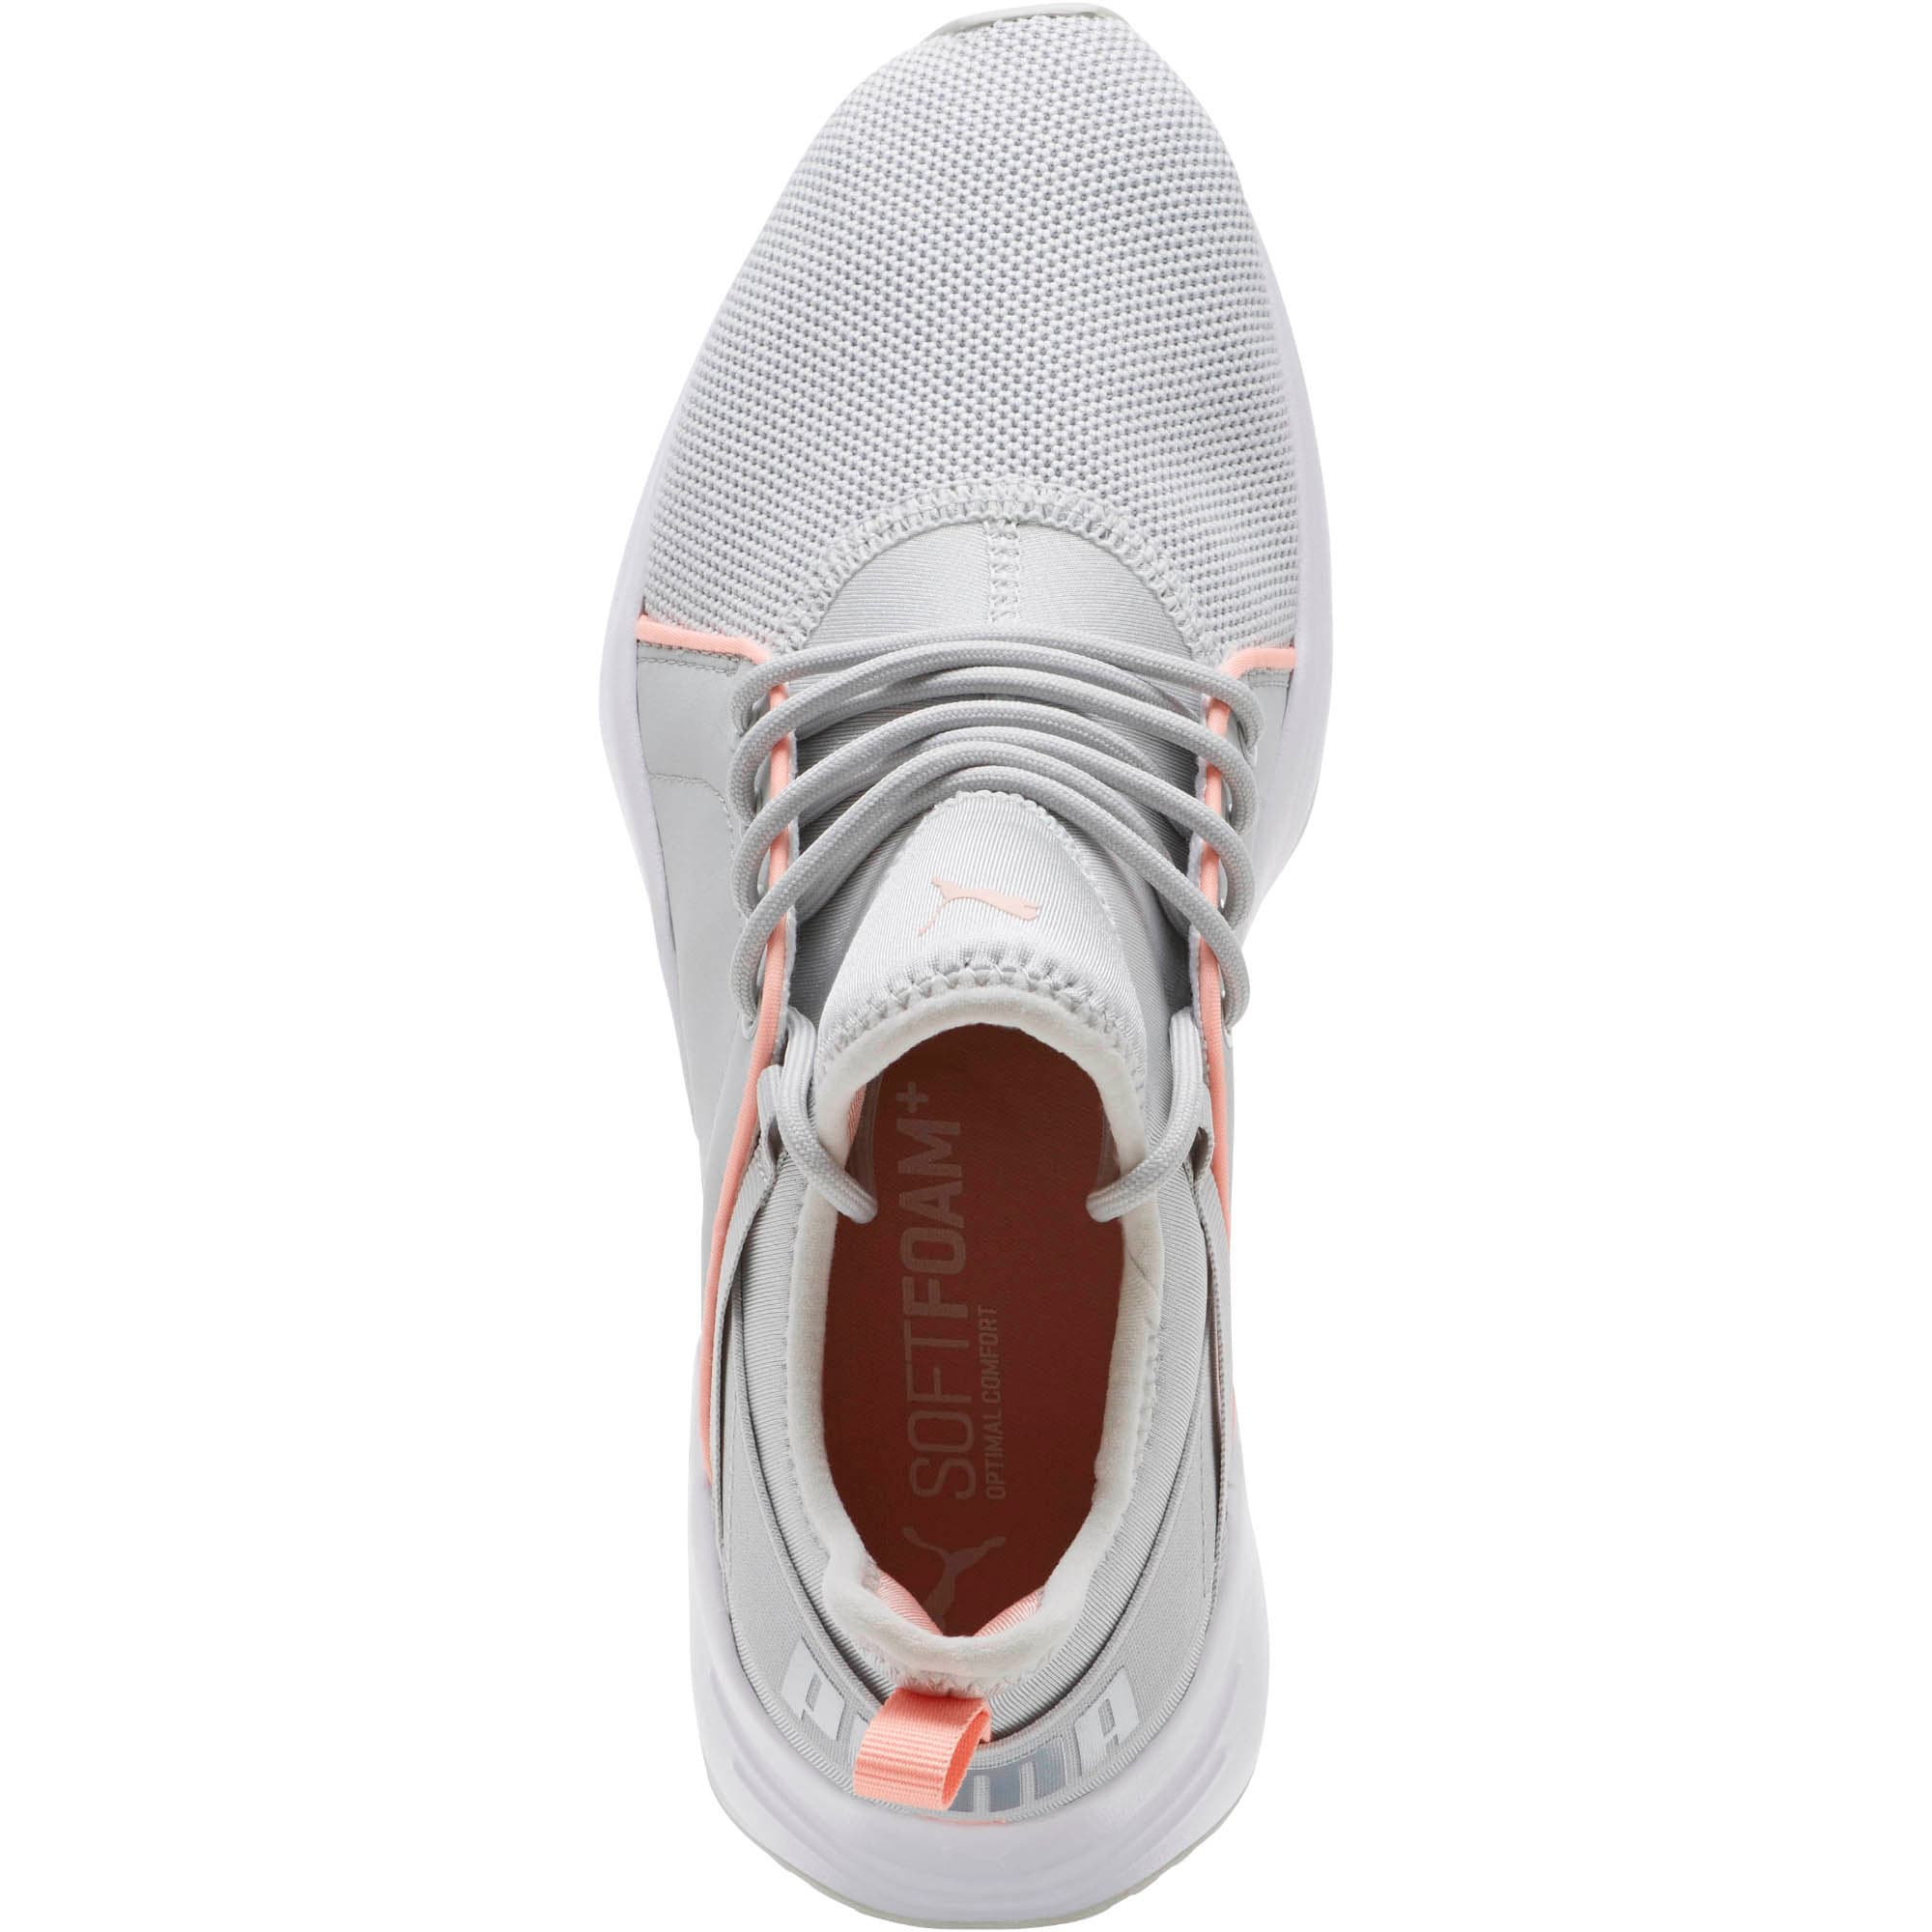 Thumbnail 5 of Sirena Women's Training Shoes, Glacier Gray-Peach Bud, medium